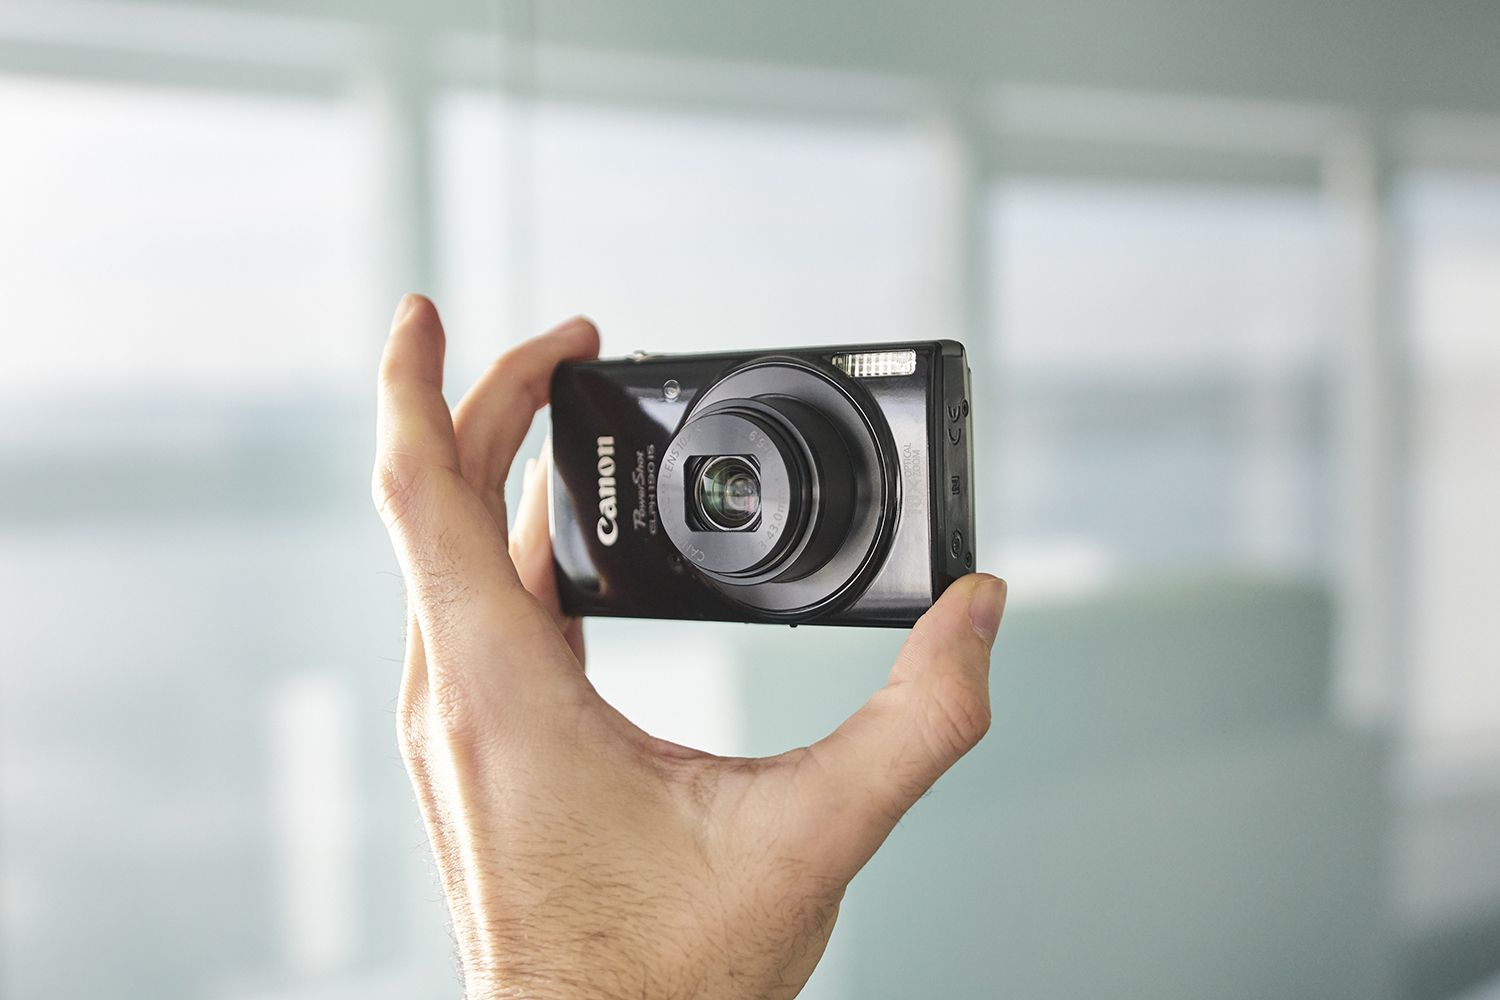 Canon PowerShot ELPH 190 Review: Solid Performance, Approachable Price